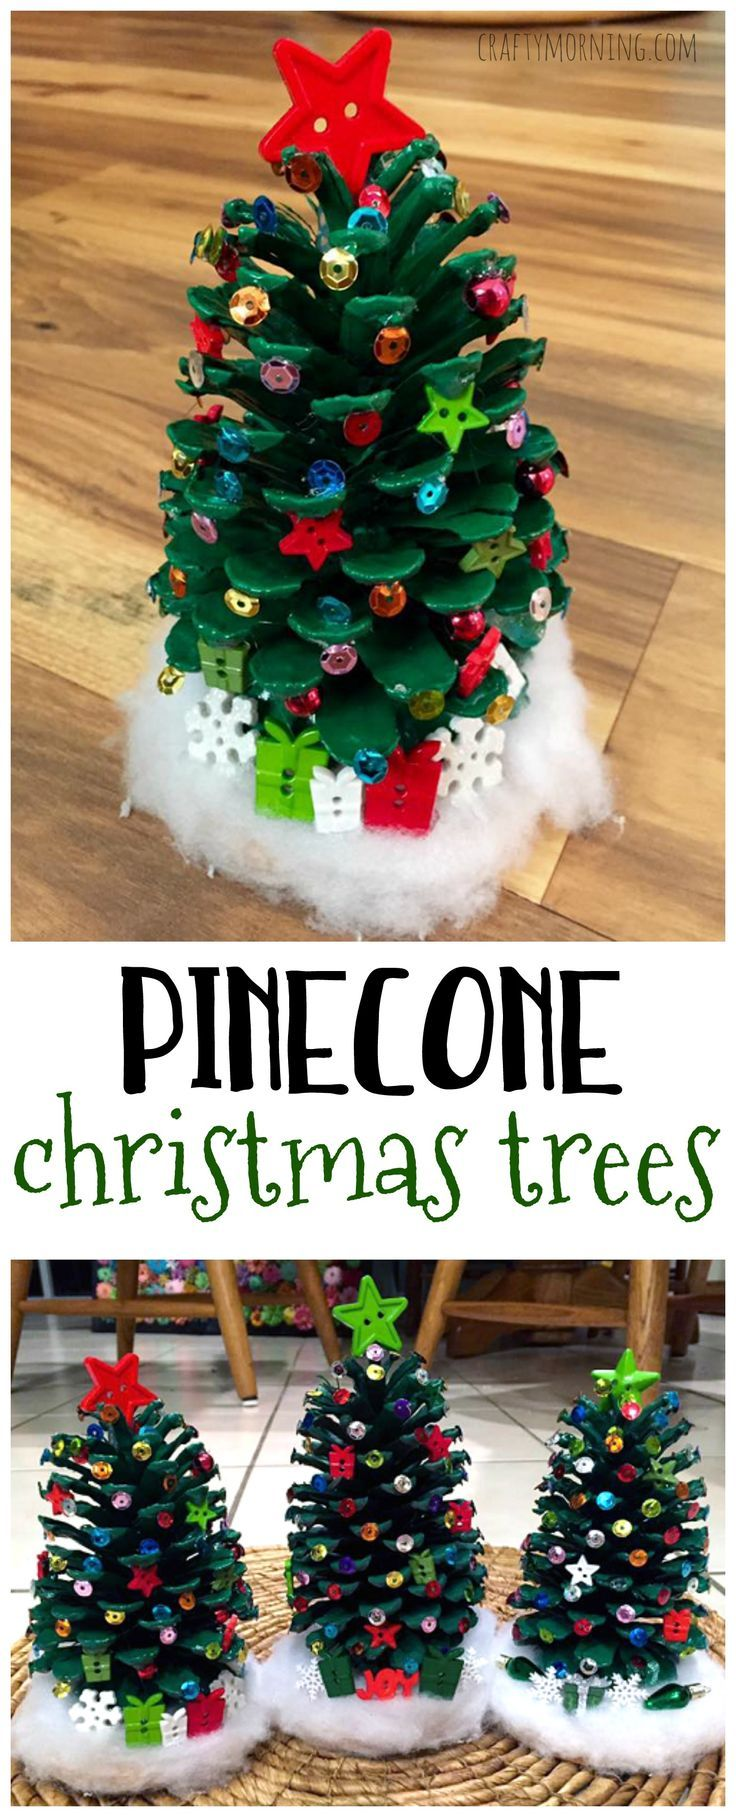 Make adorable pinecone christmas trees for a Christmas kids craft! So easy and cute.